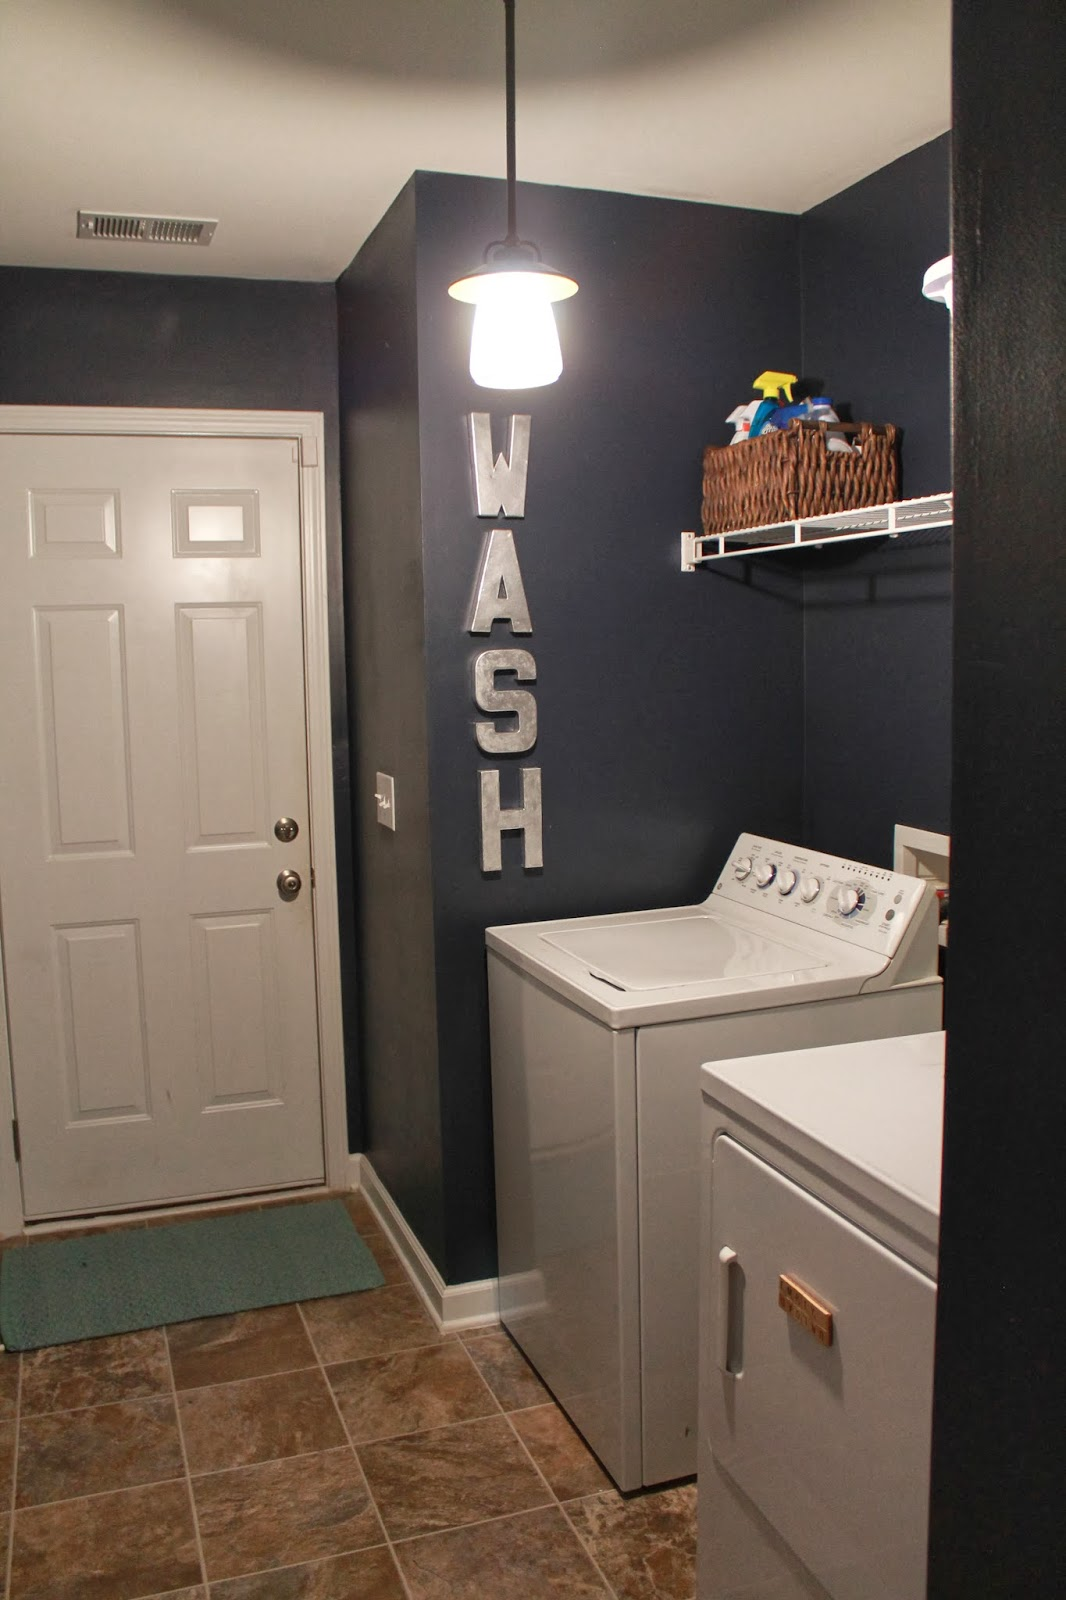 Blogspot Blog Sign In Hous Love Dog Blog Laundry Room Before After